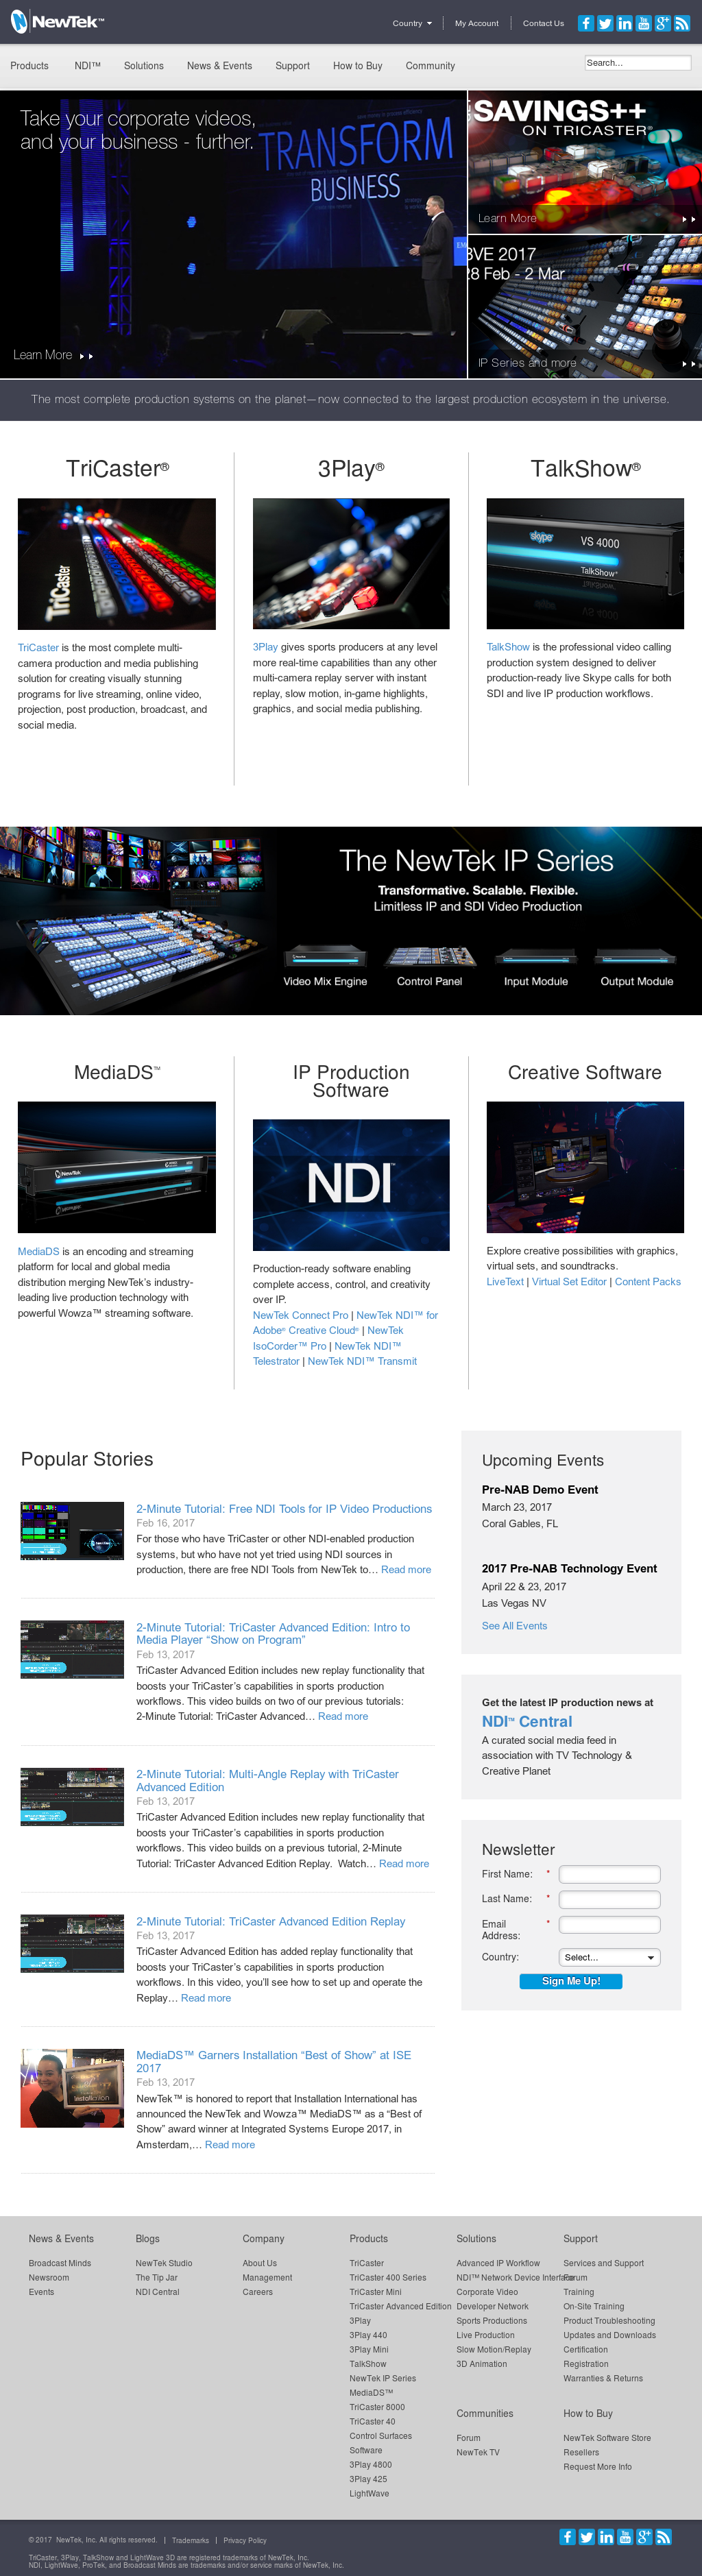 NewTek Competitors, Revenue and Employees - Owler Company Profile